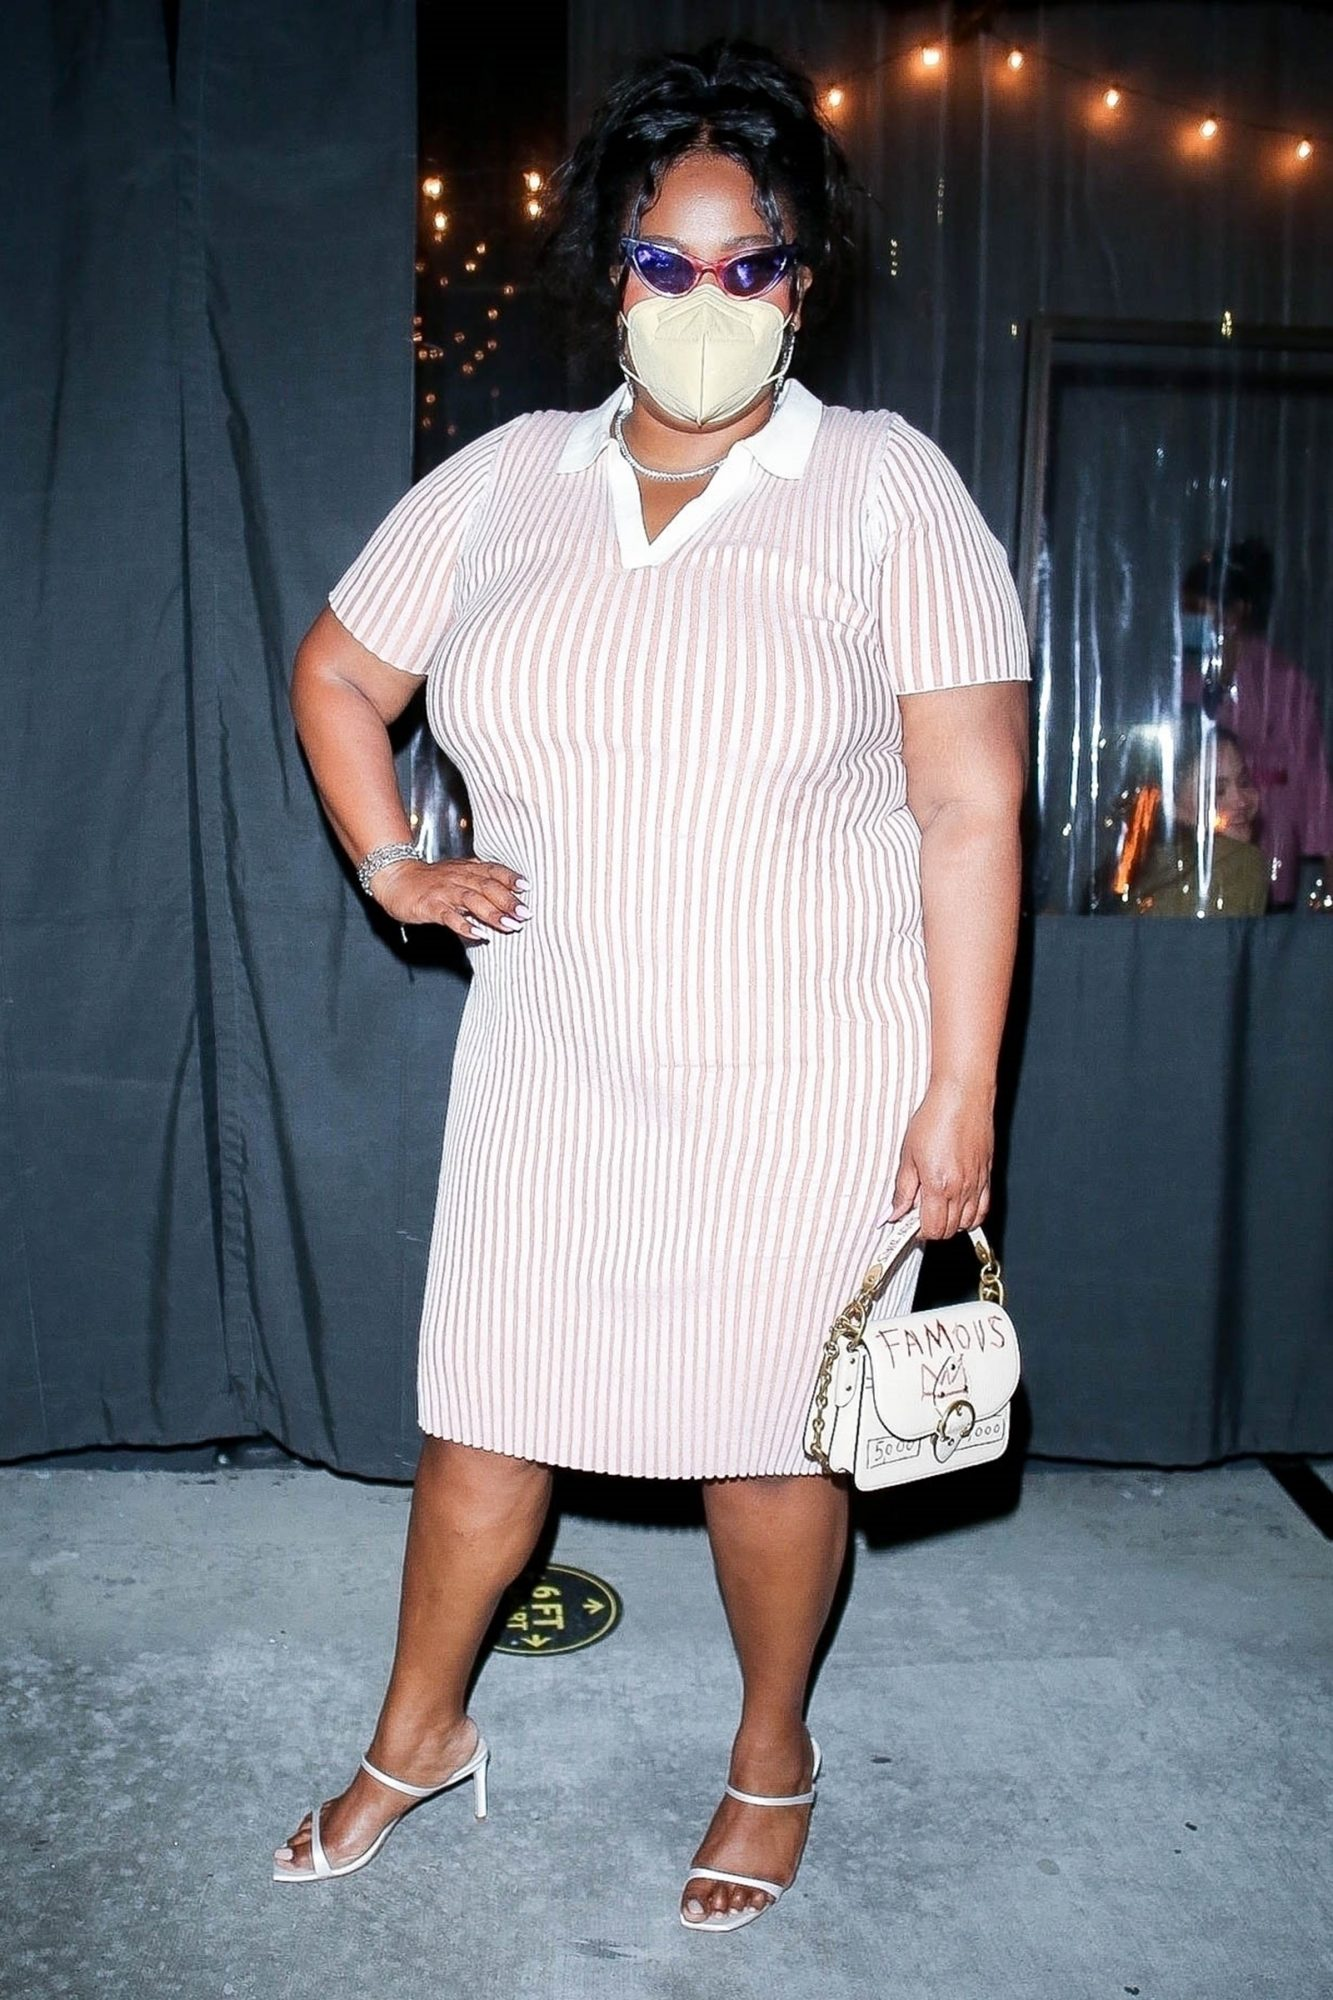 Lizzo looks stunning as she flaunts her curves in a pink and white striped dress while leaving dinner at Crossroads Kitchen in Los Angeles